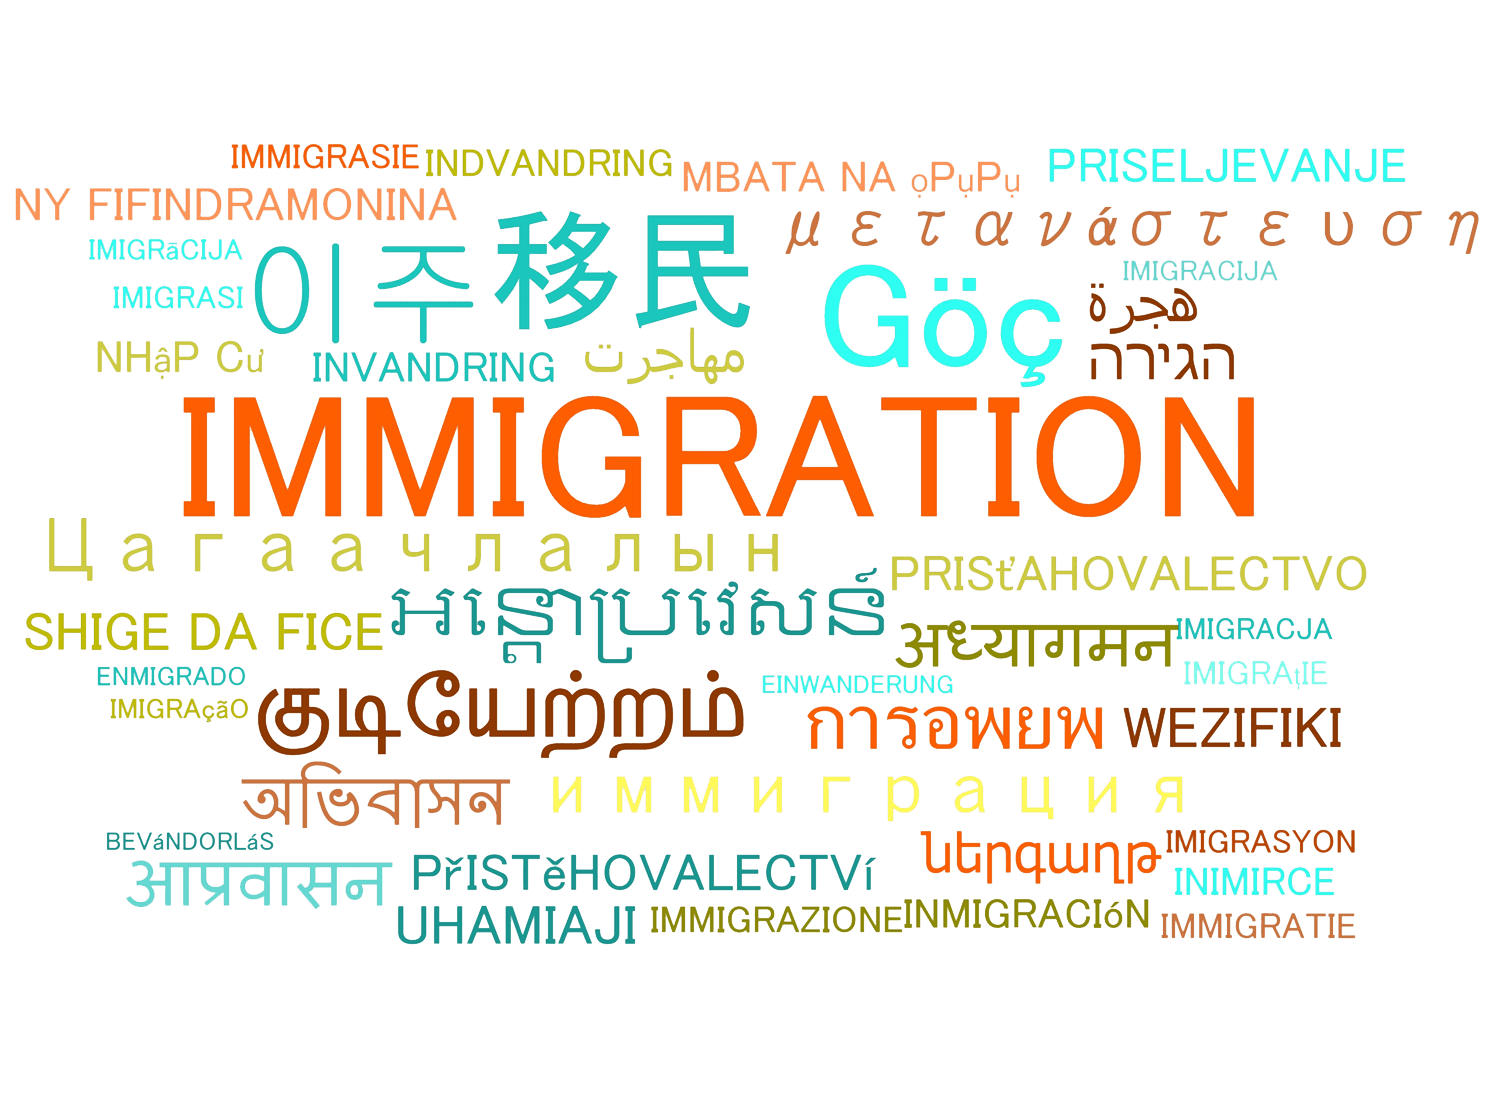 Australian immigration services for all nationalities